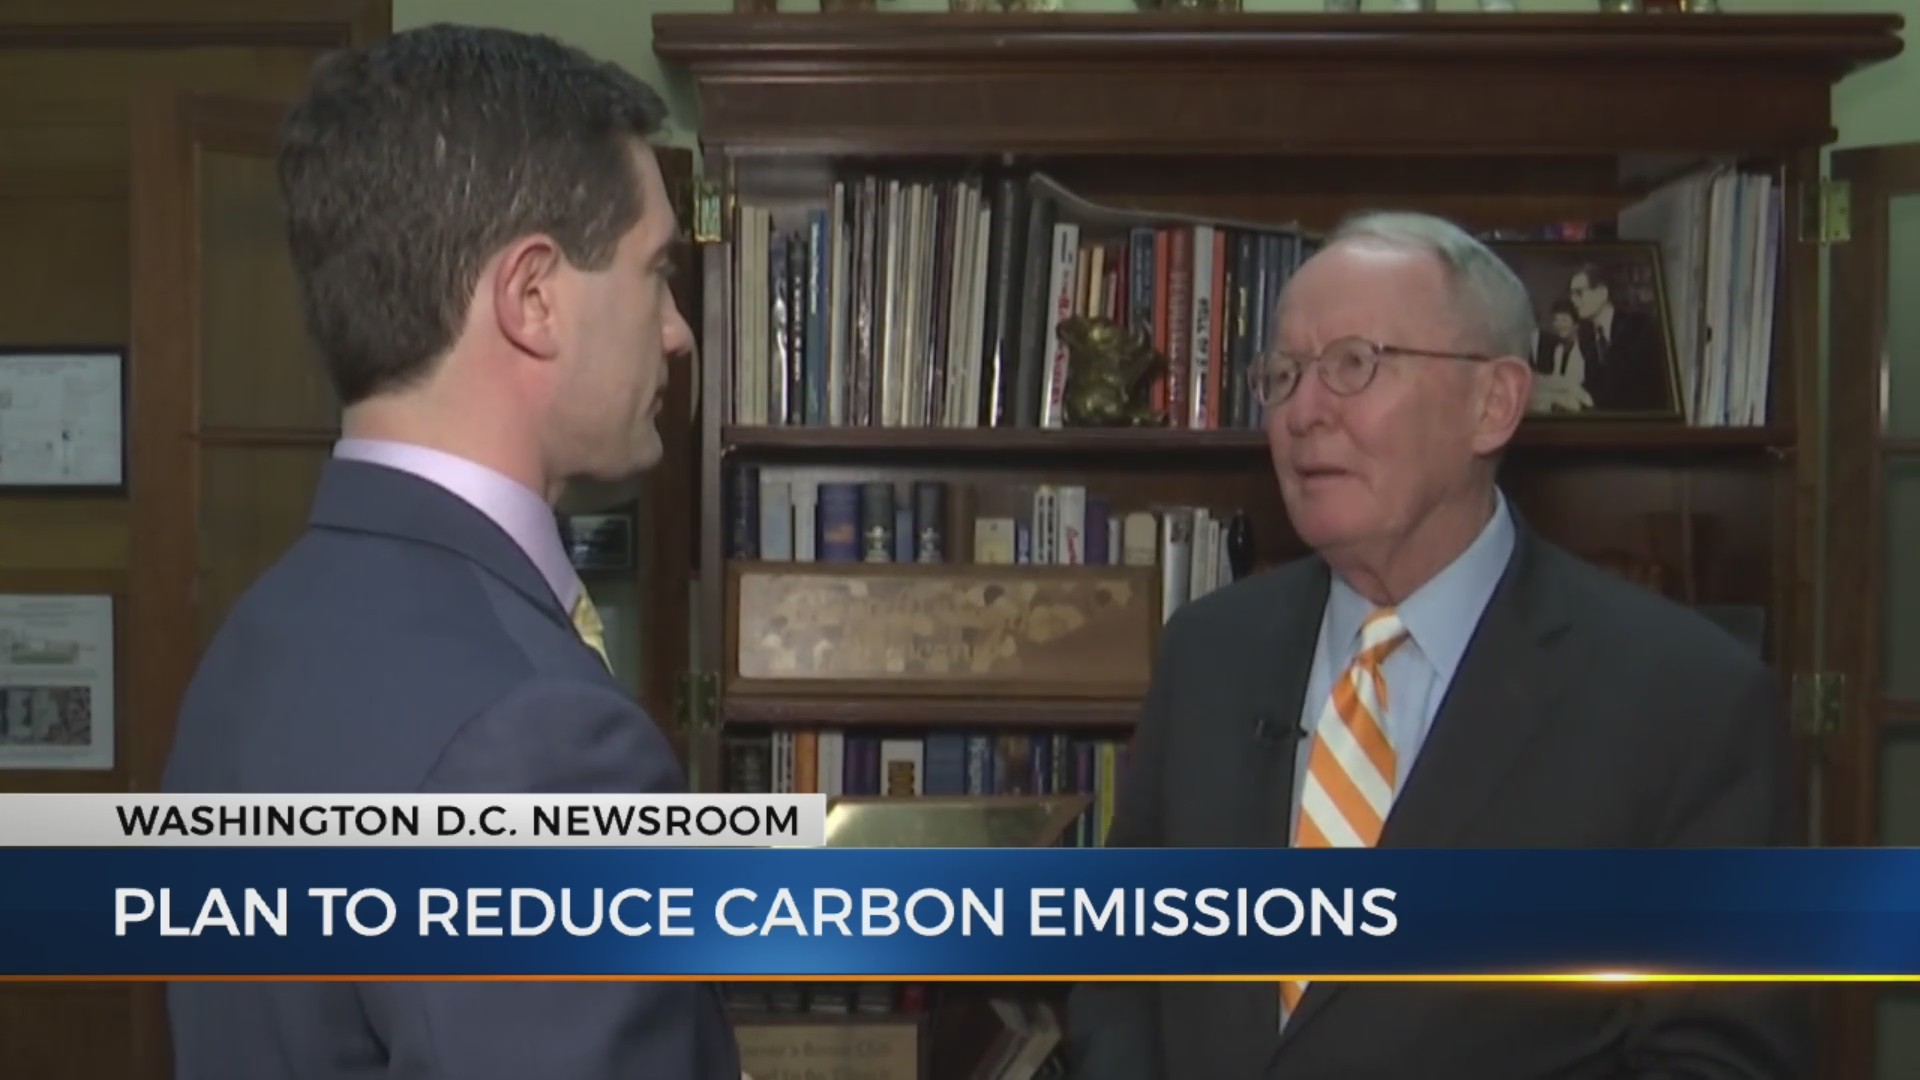 Sen. Lamar Alexander proposes GOP Green Deal